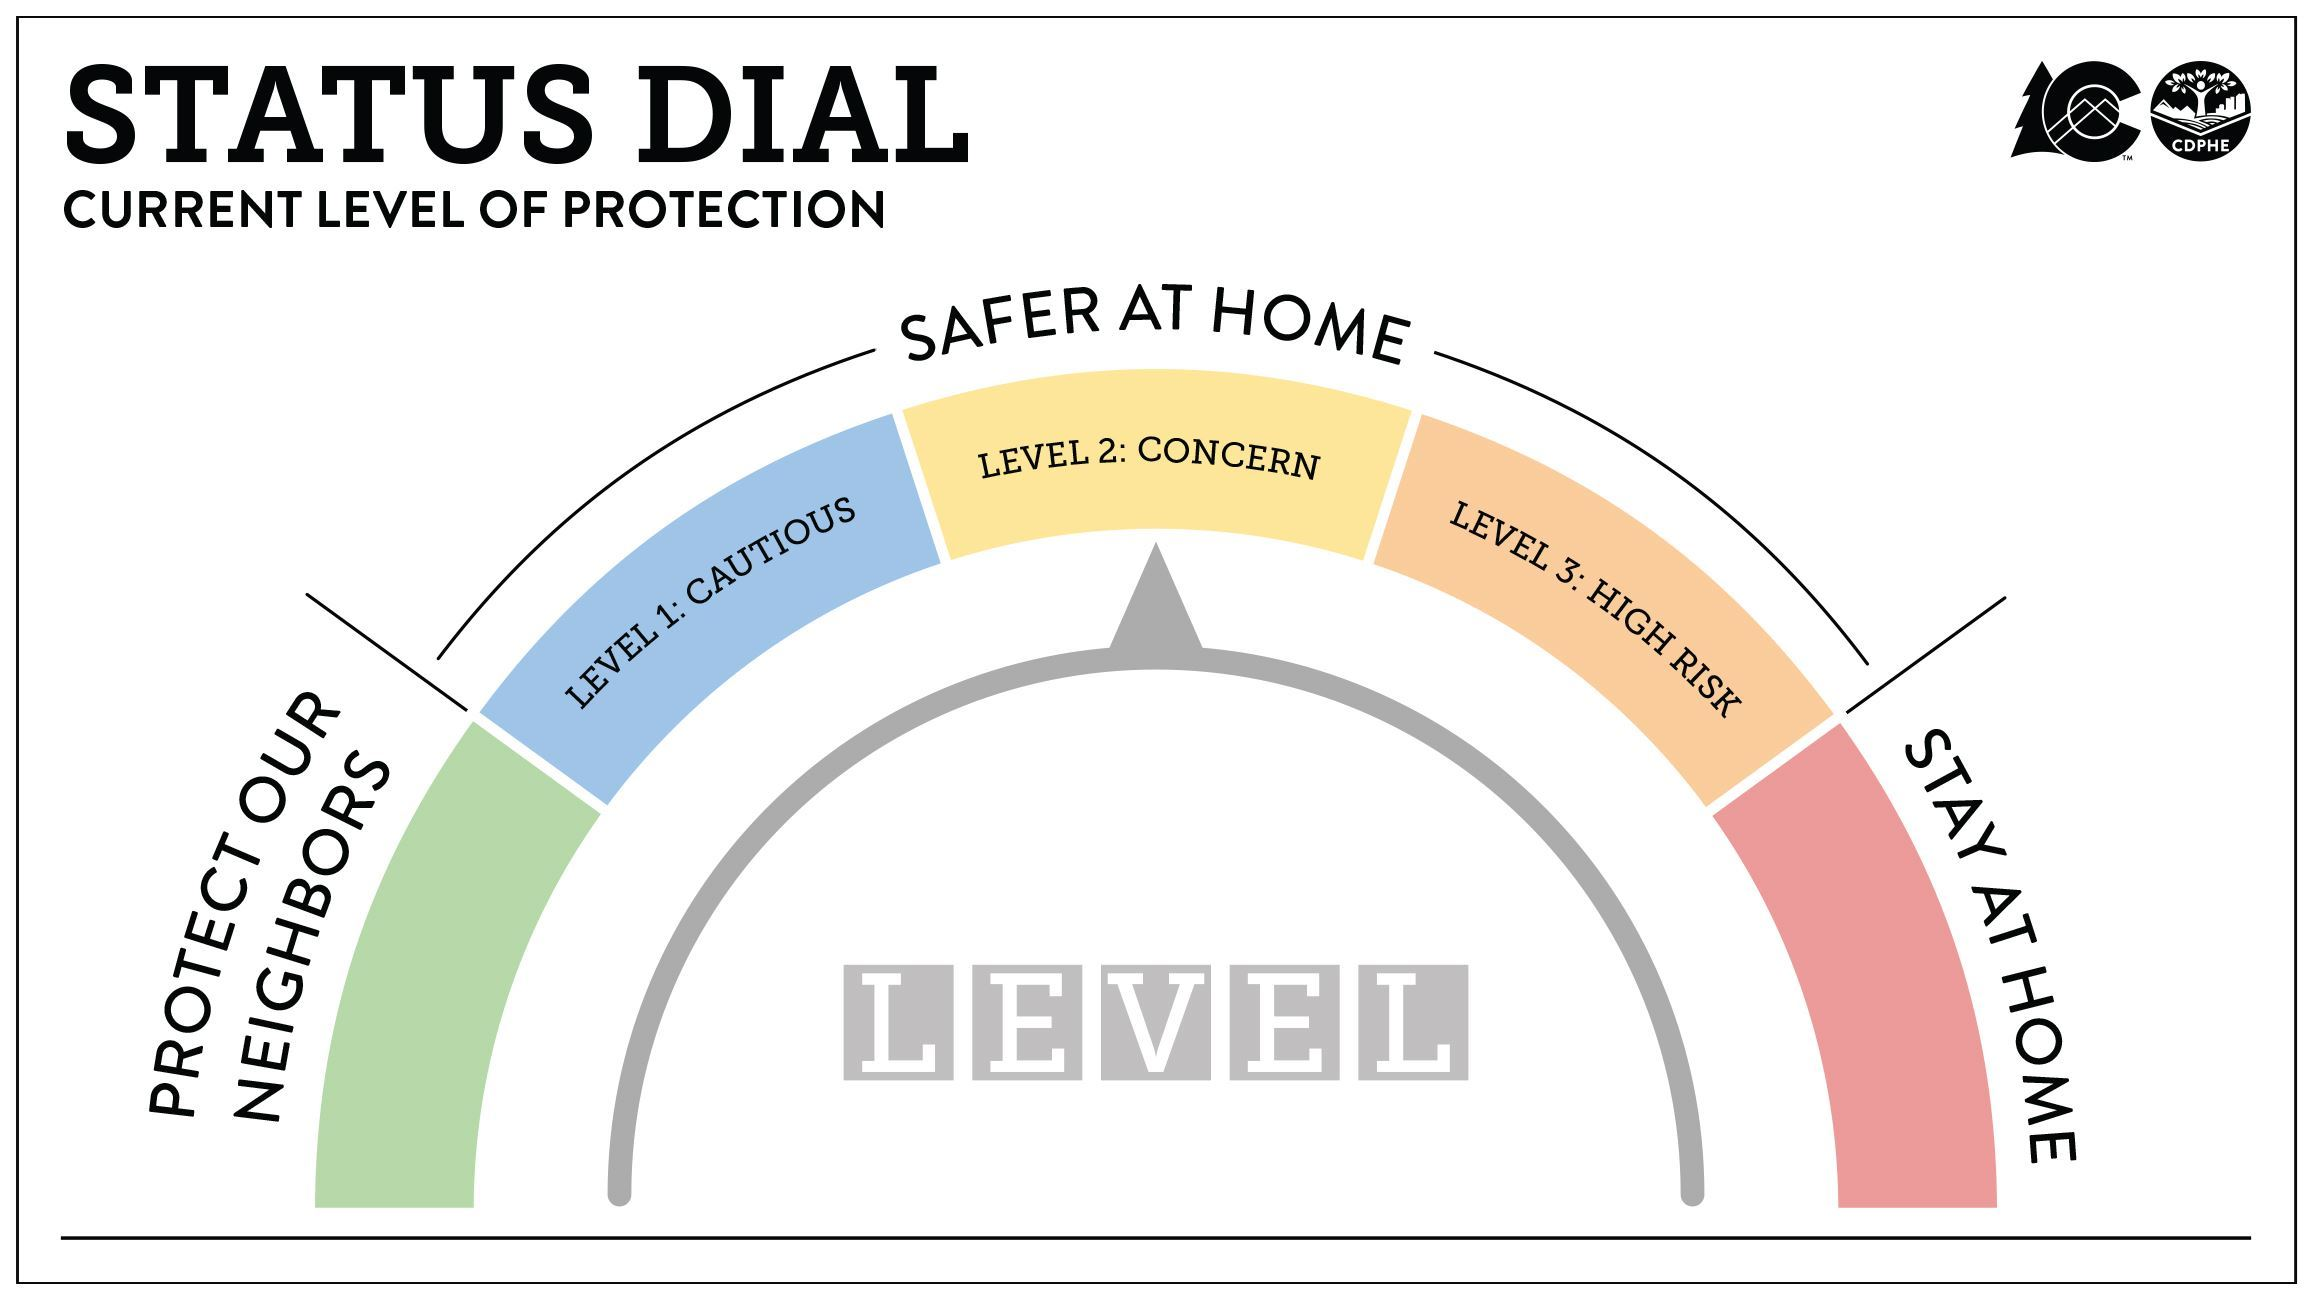 Safer at Home COVID Dial Image